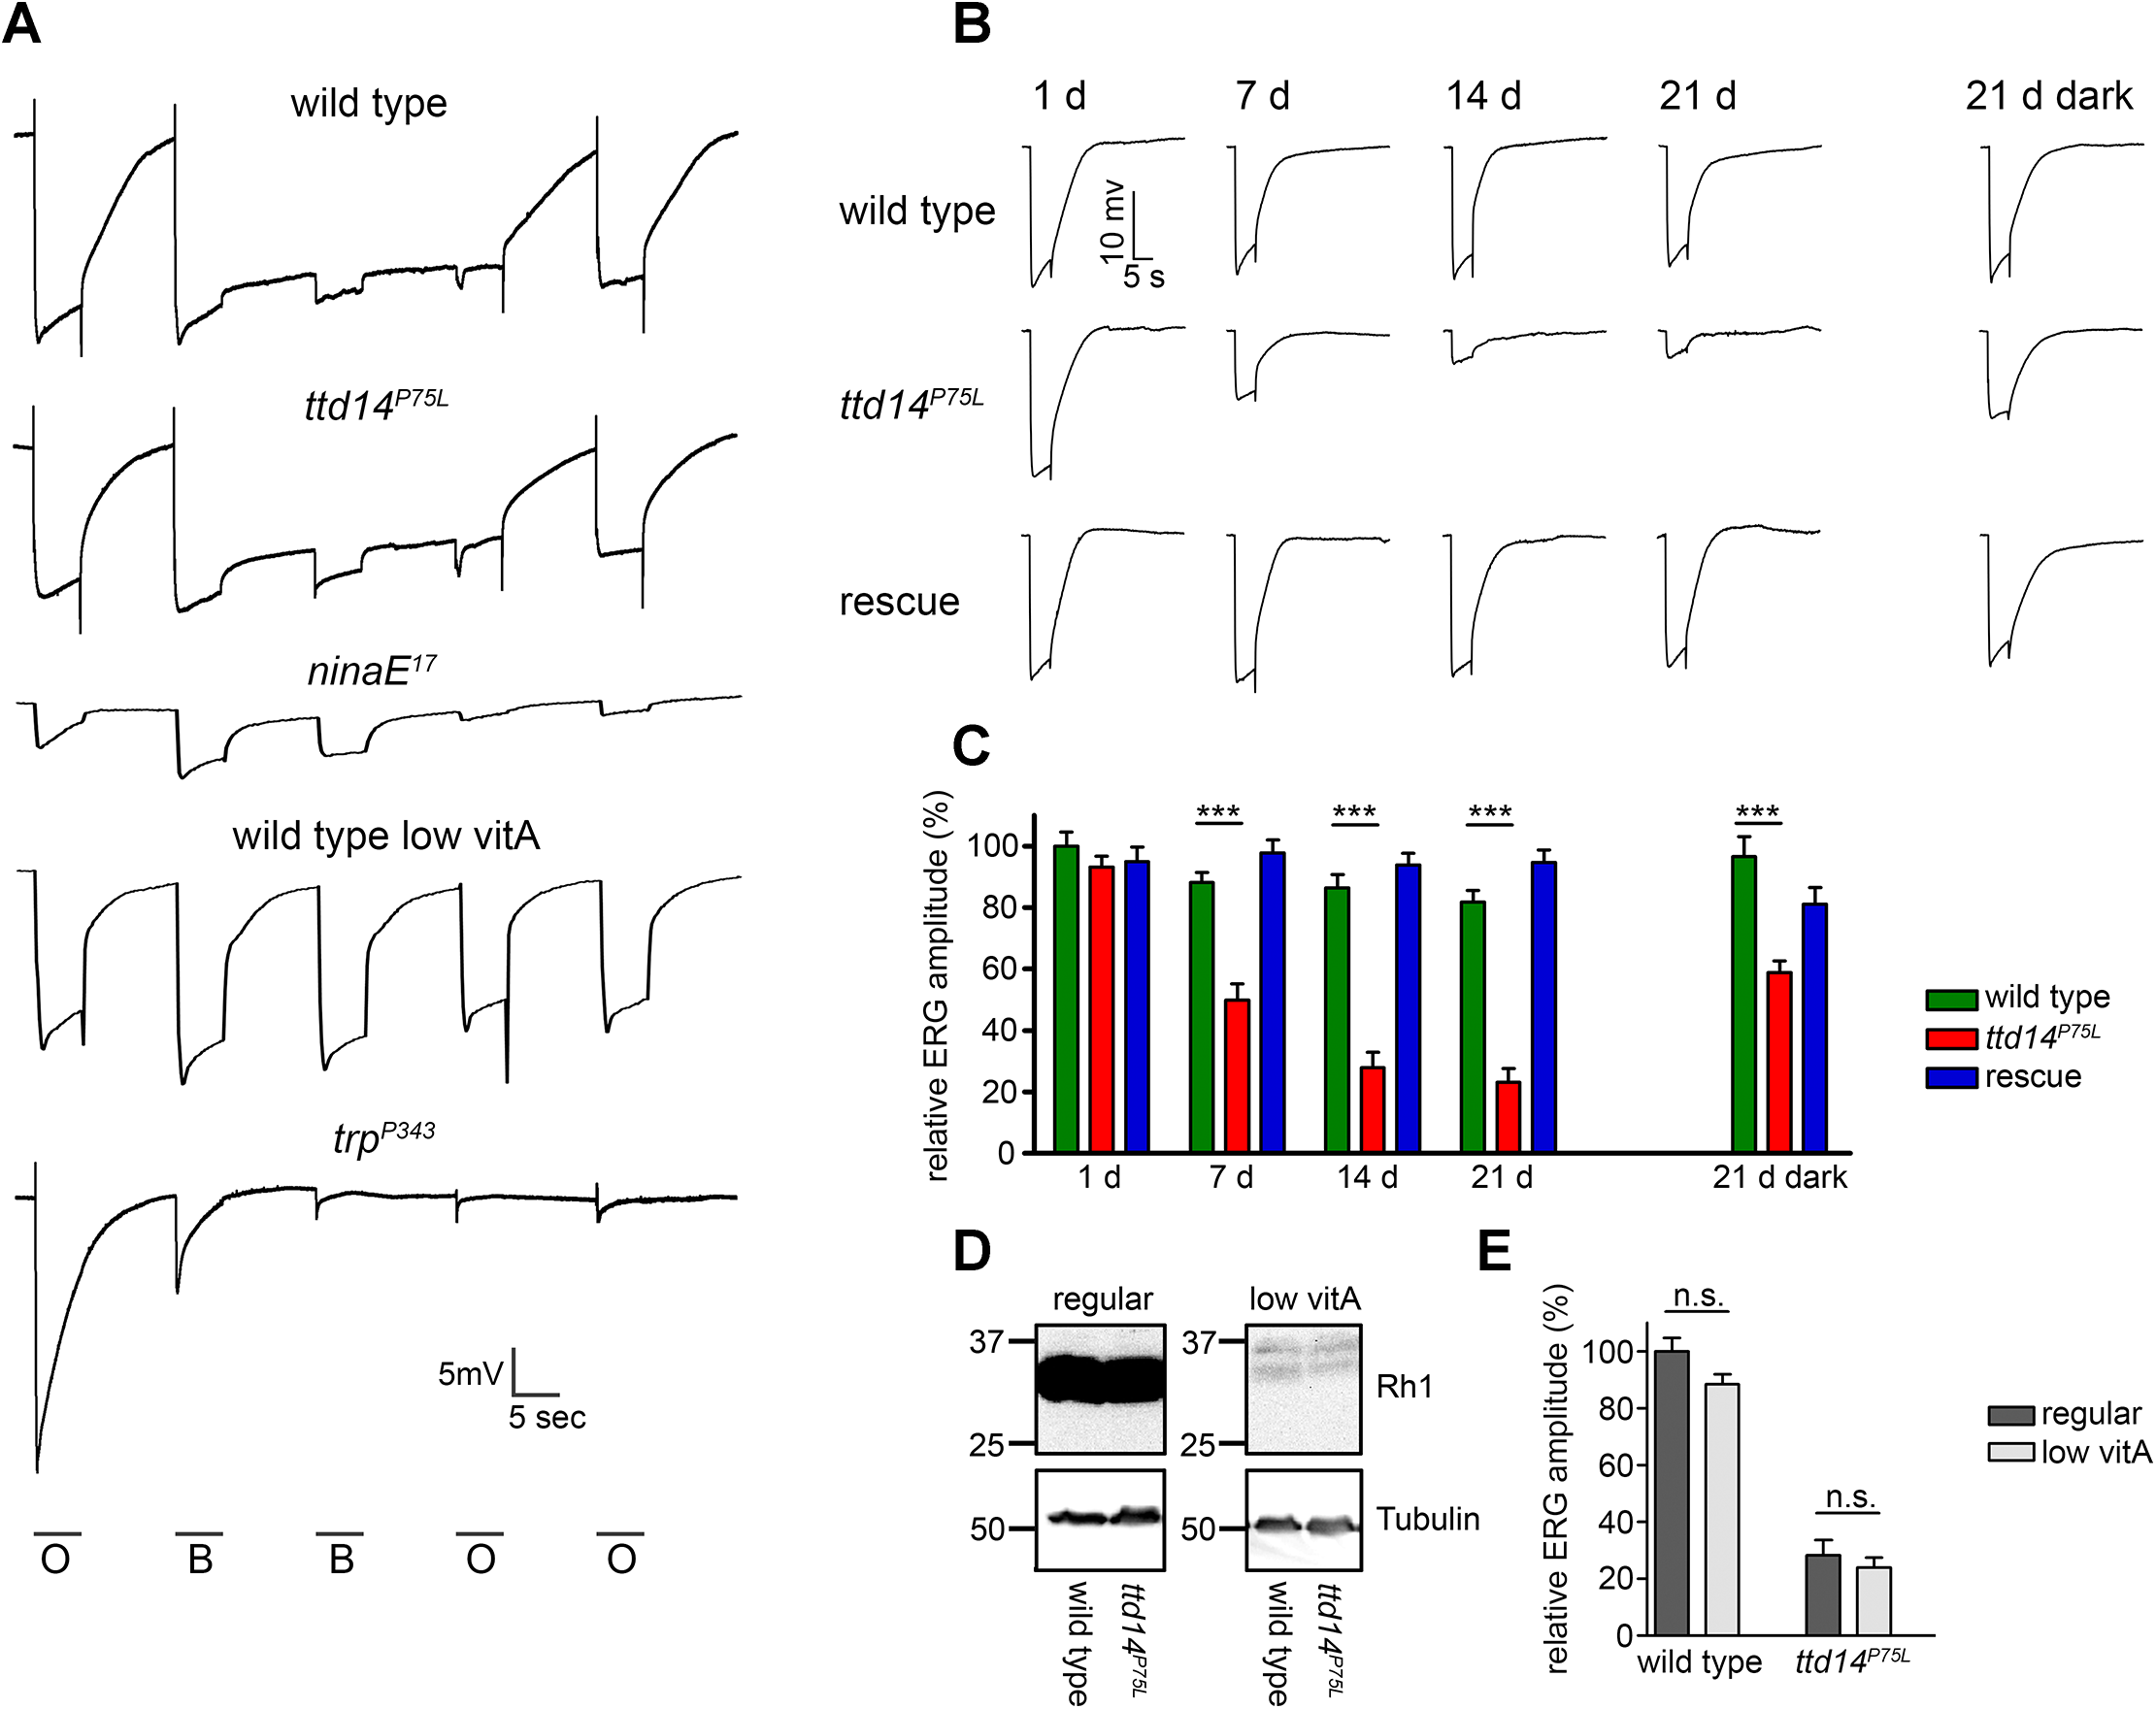 Aged <i>ttd14</i><sup><i>P75L</i></sup> mutant flies kept in a 12 hours light/ 12 hours dark cycle develop physiological defects.